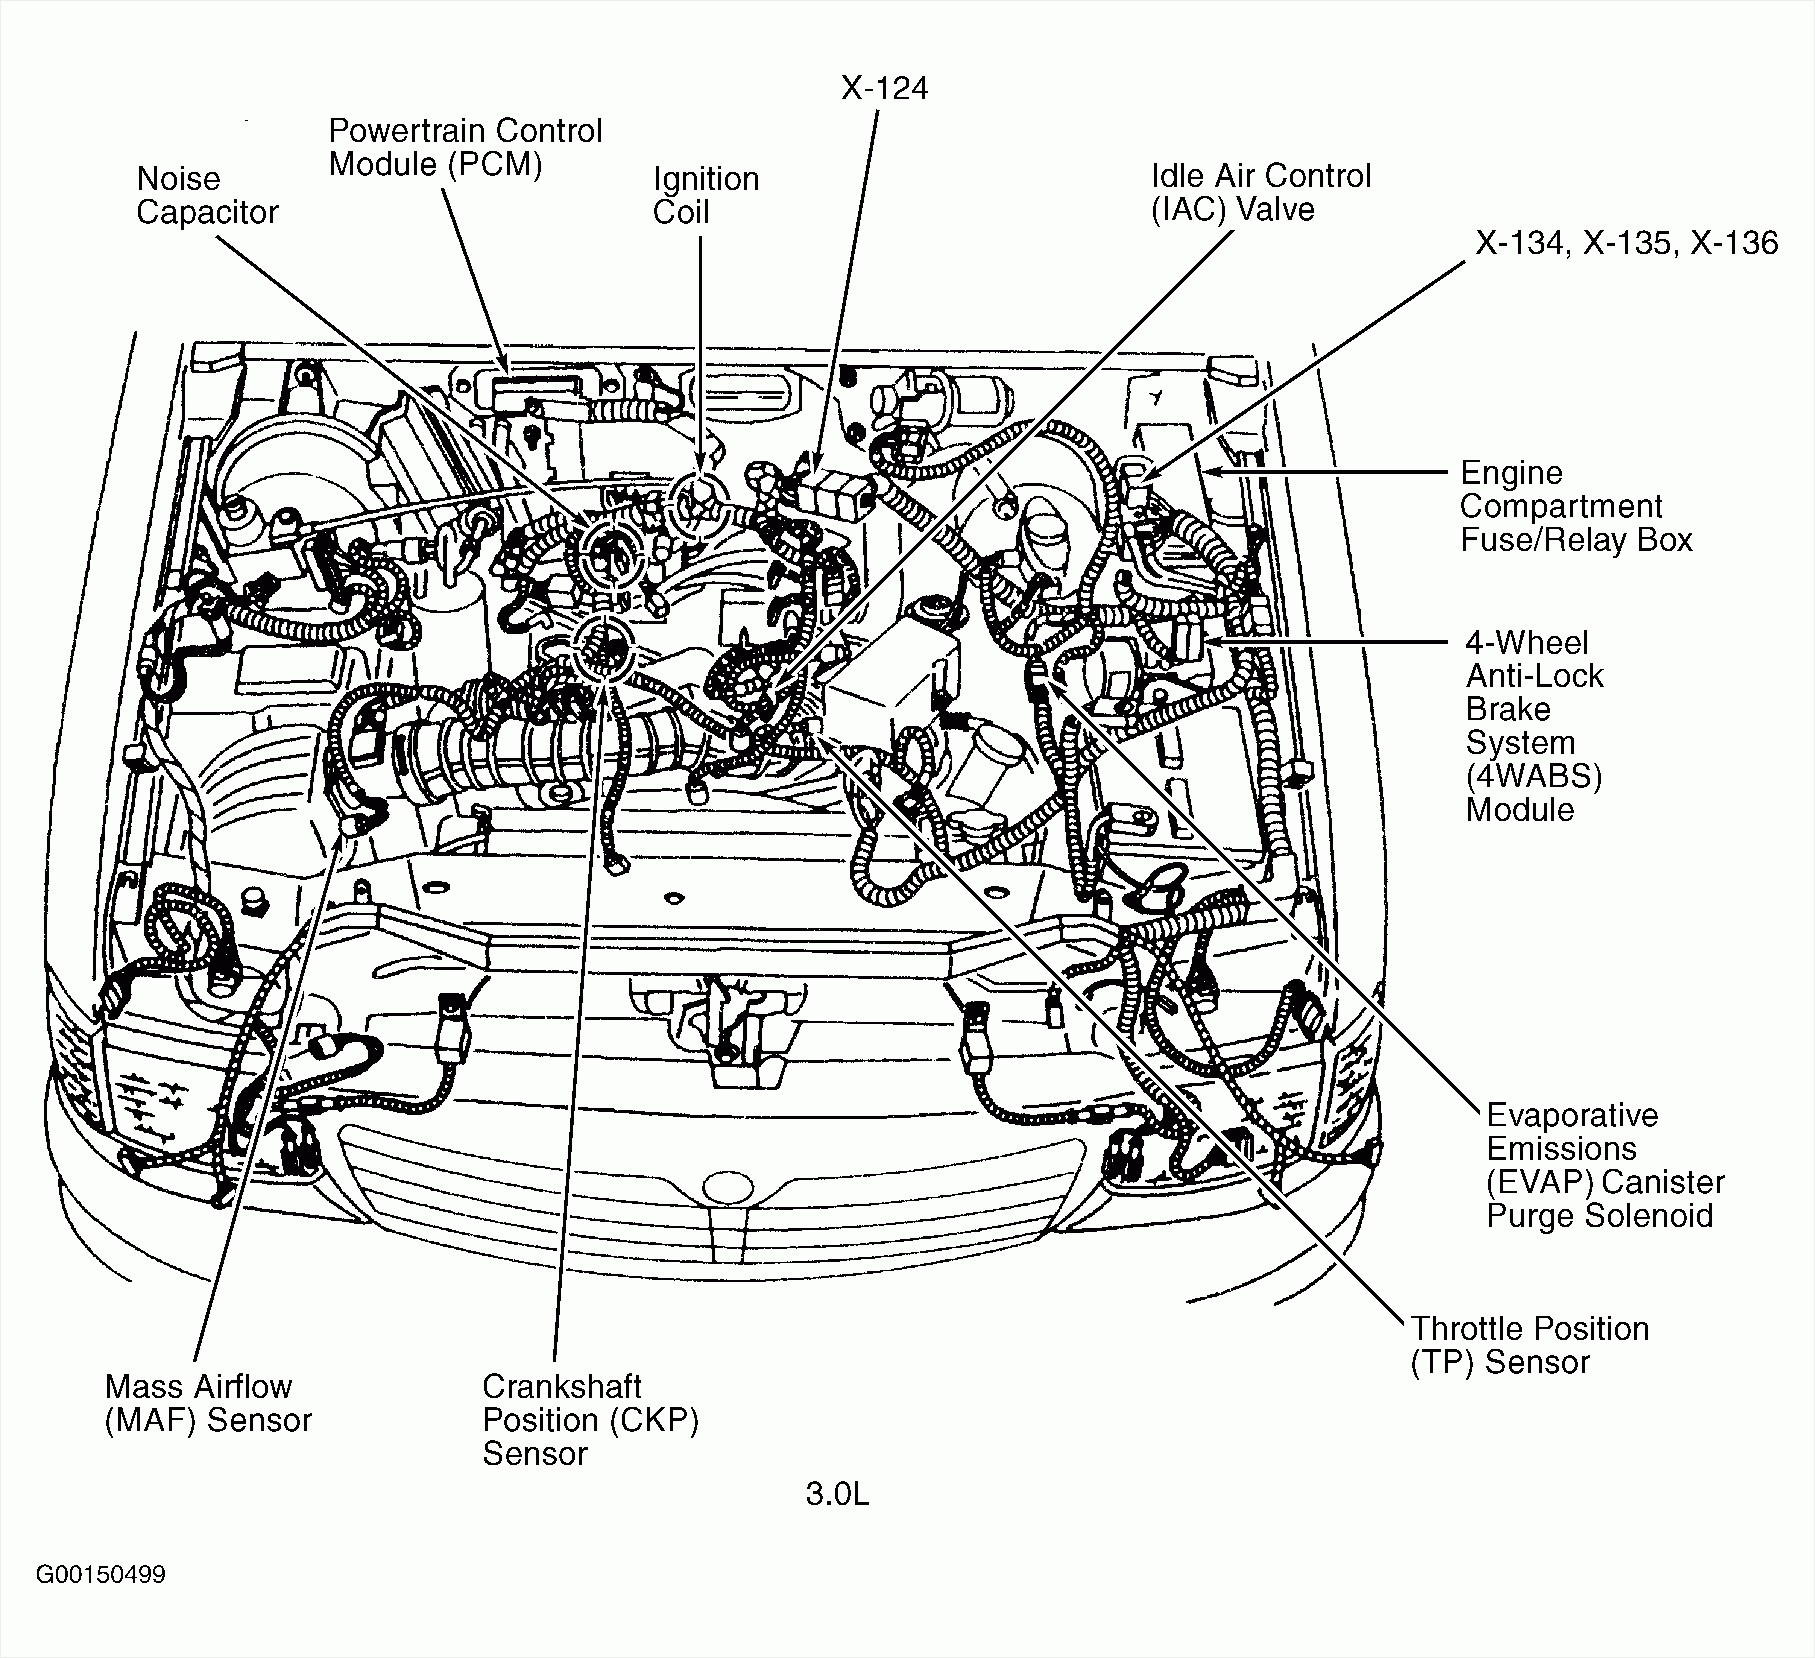 hight resolution of 2002 ford mustang engine diagram wiring diagram diagram moreover diagram of 1999 ford mustang fuel system moreover bmw